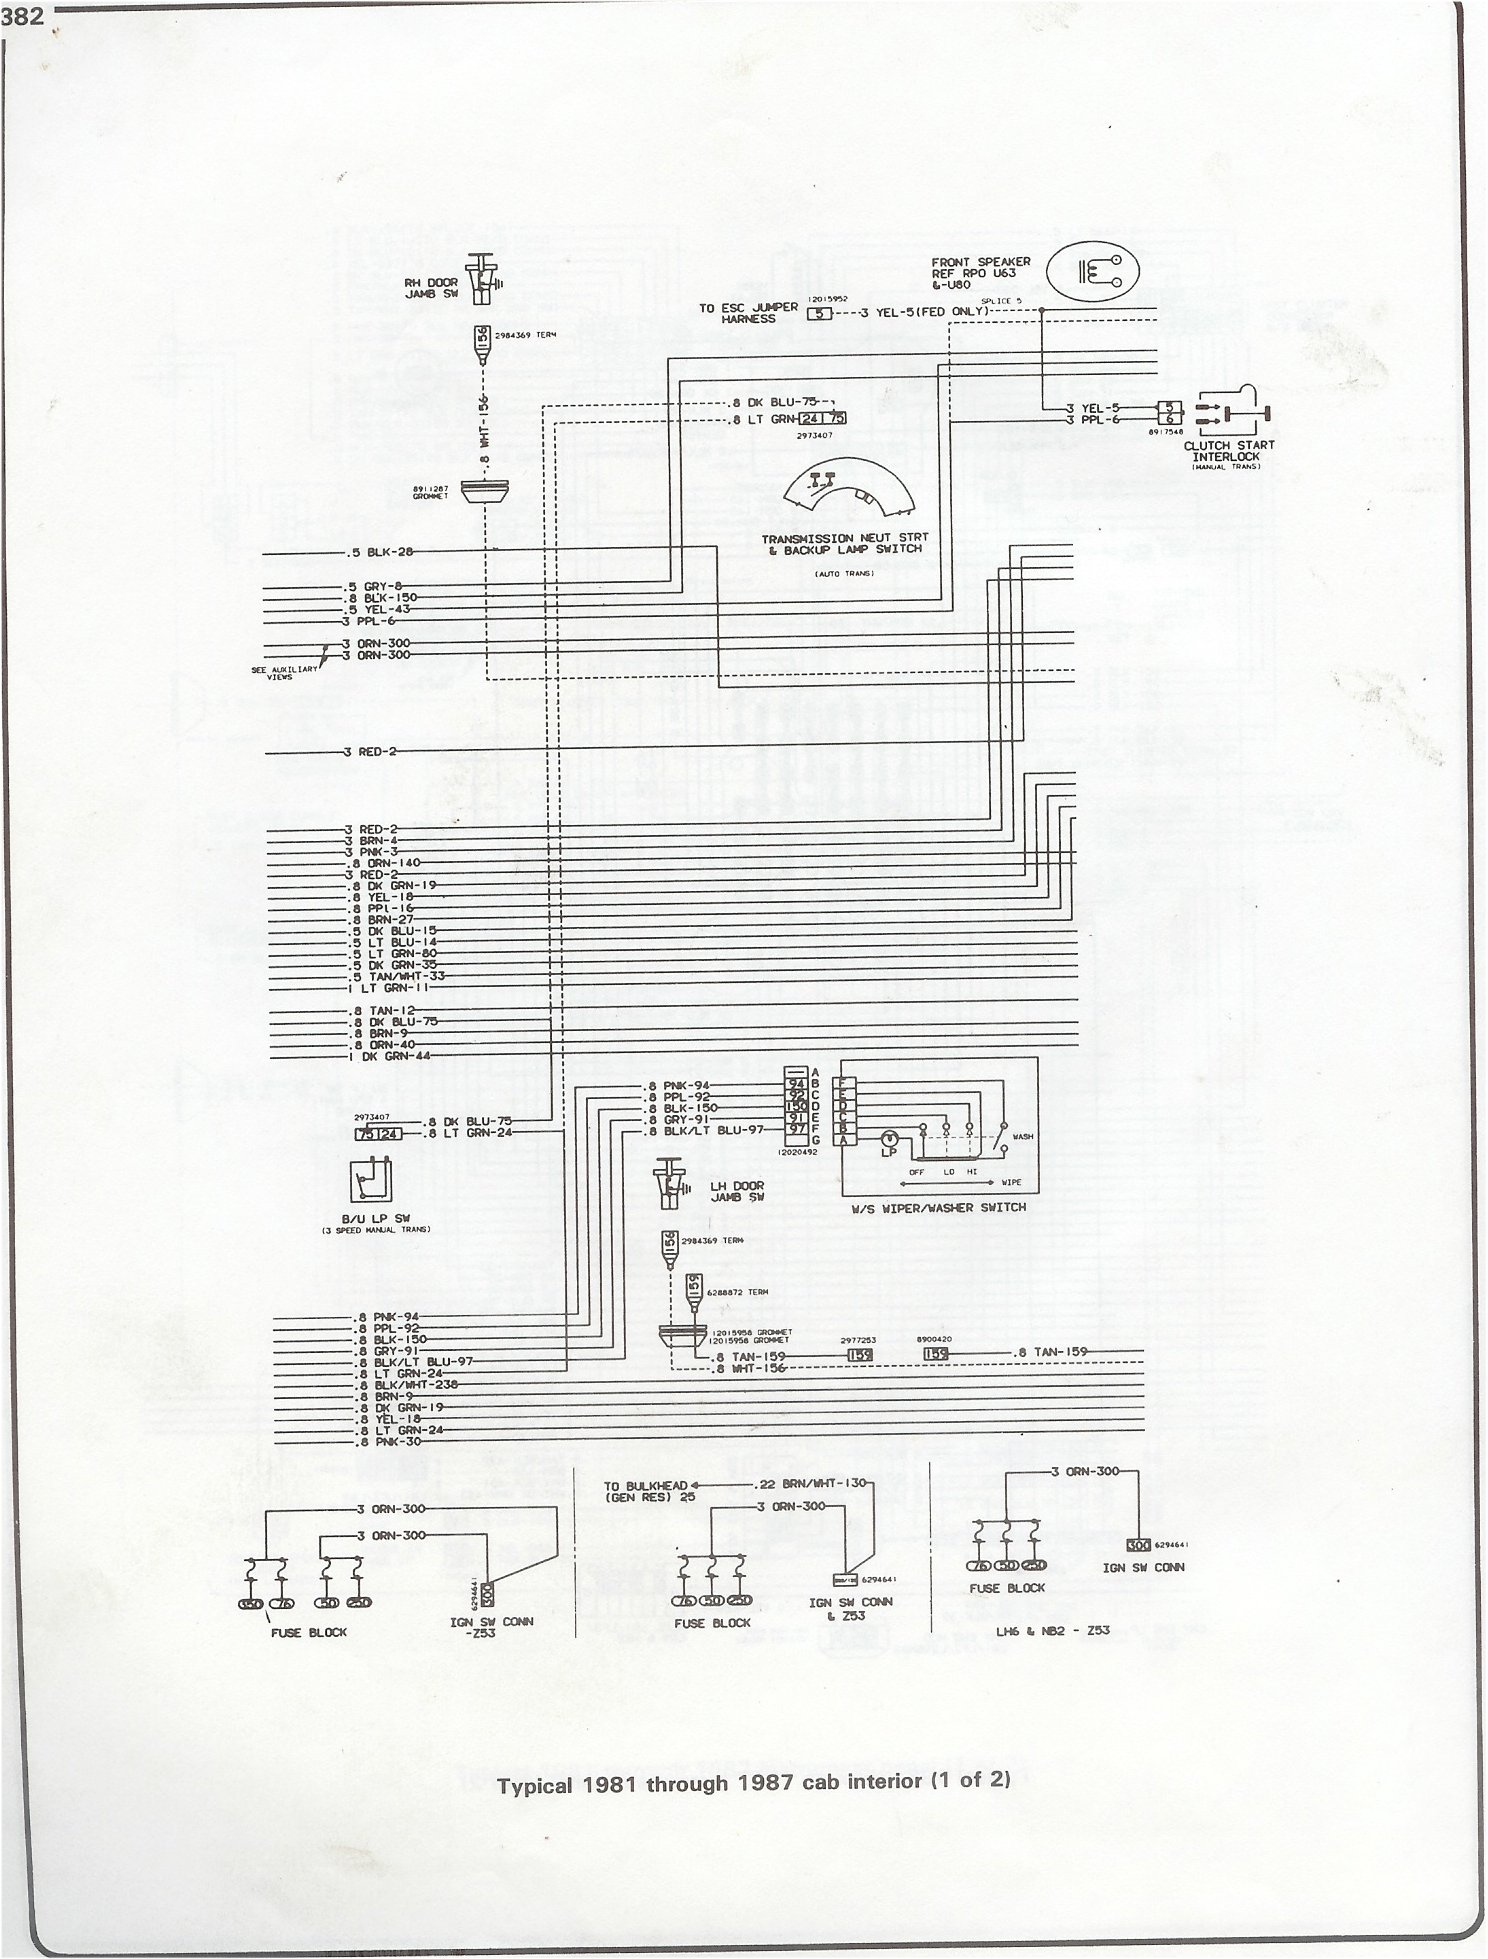 81-87 I6 Engine Compartment · 81-87 V8 Engine Compartment · 81-87  Instrument Panel Page 1 · 81-87 Instrument Panel Page 2 · 81-87 computer  control wiring